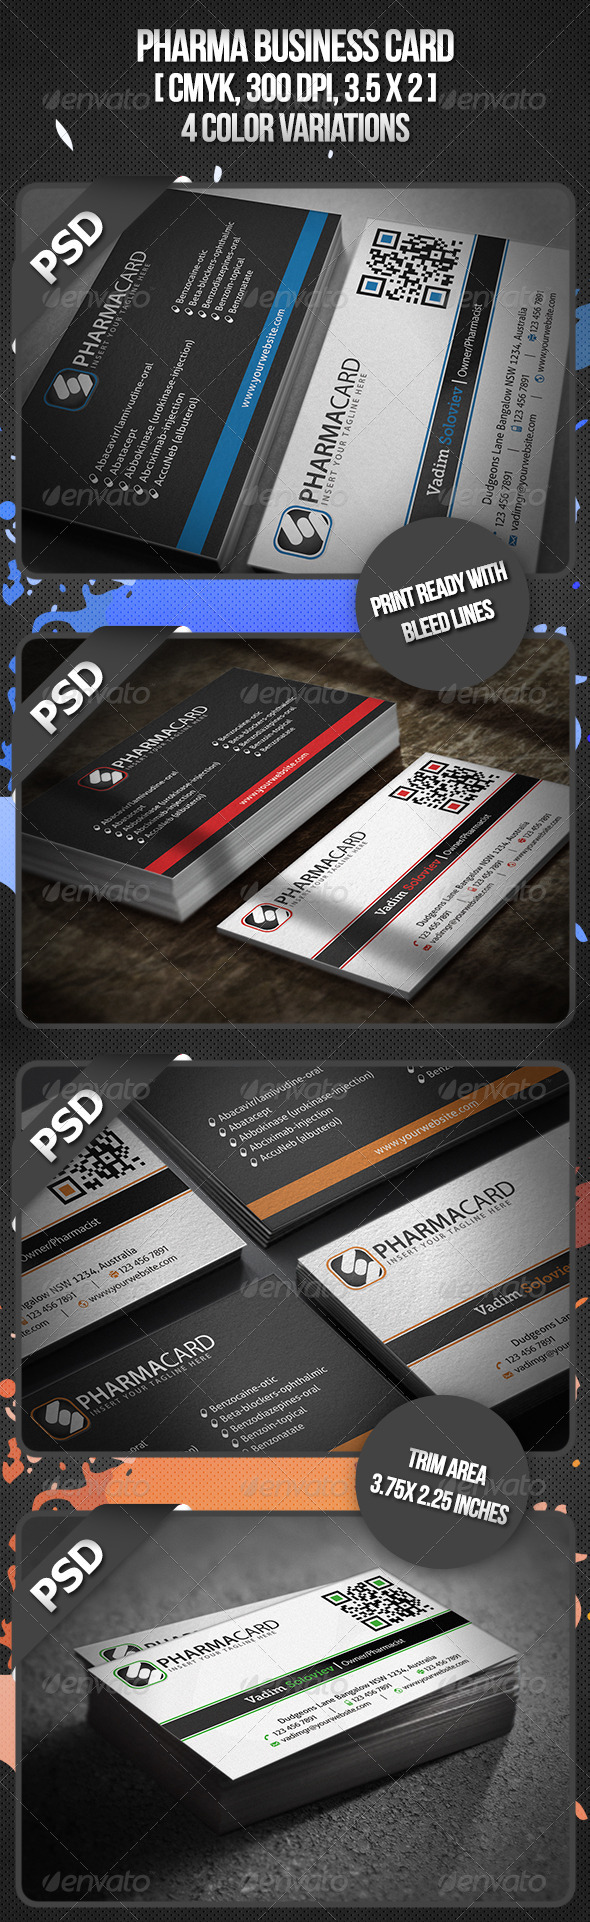 Pharma Business Card - Corporate Business Cards